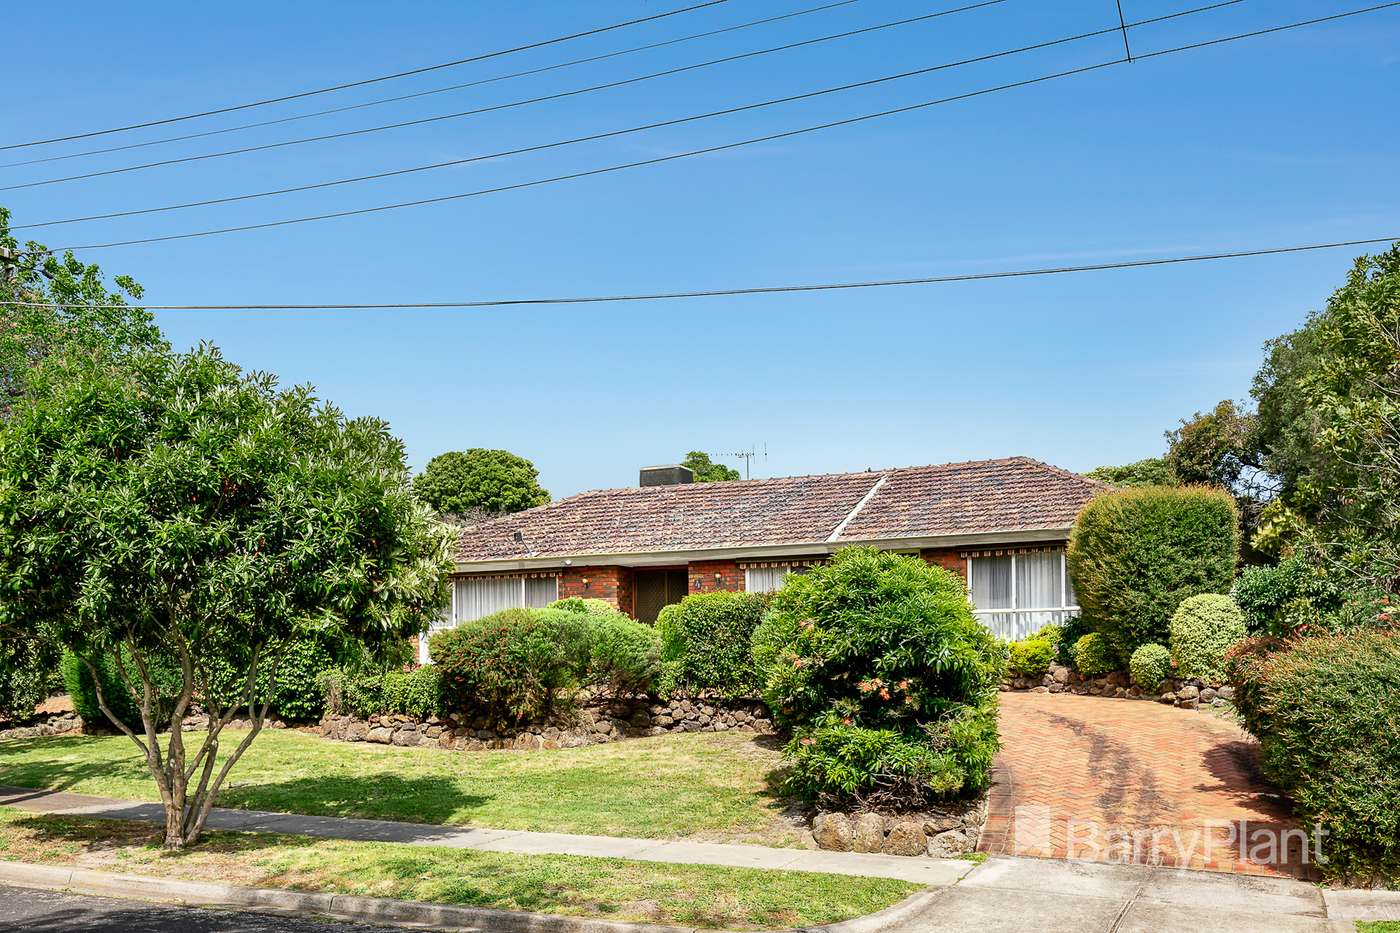 Main view of Homely house listing, 4 Beaumont Crescent, Frankston, VIC 3199